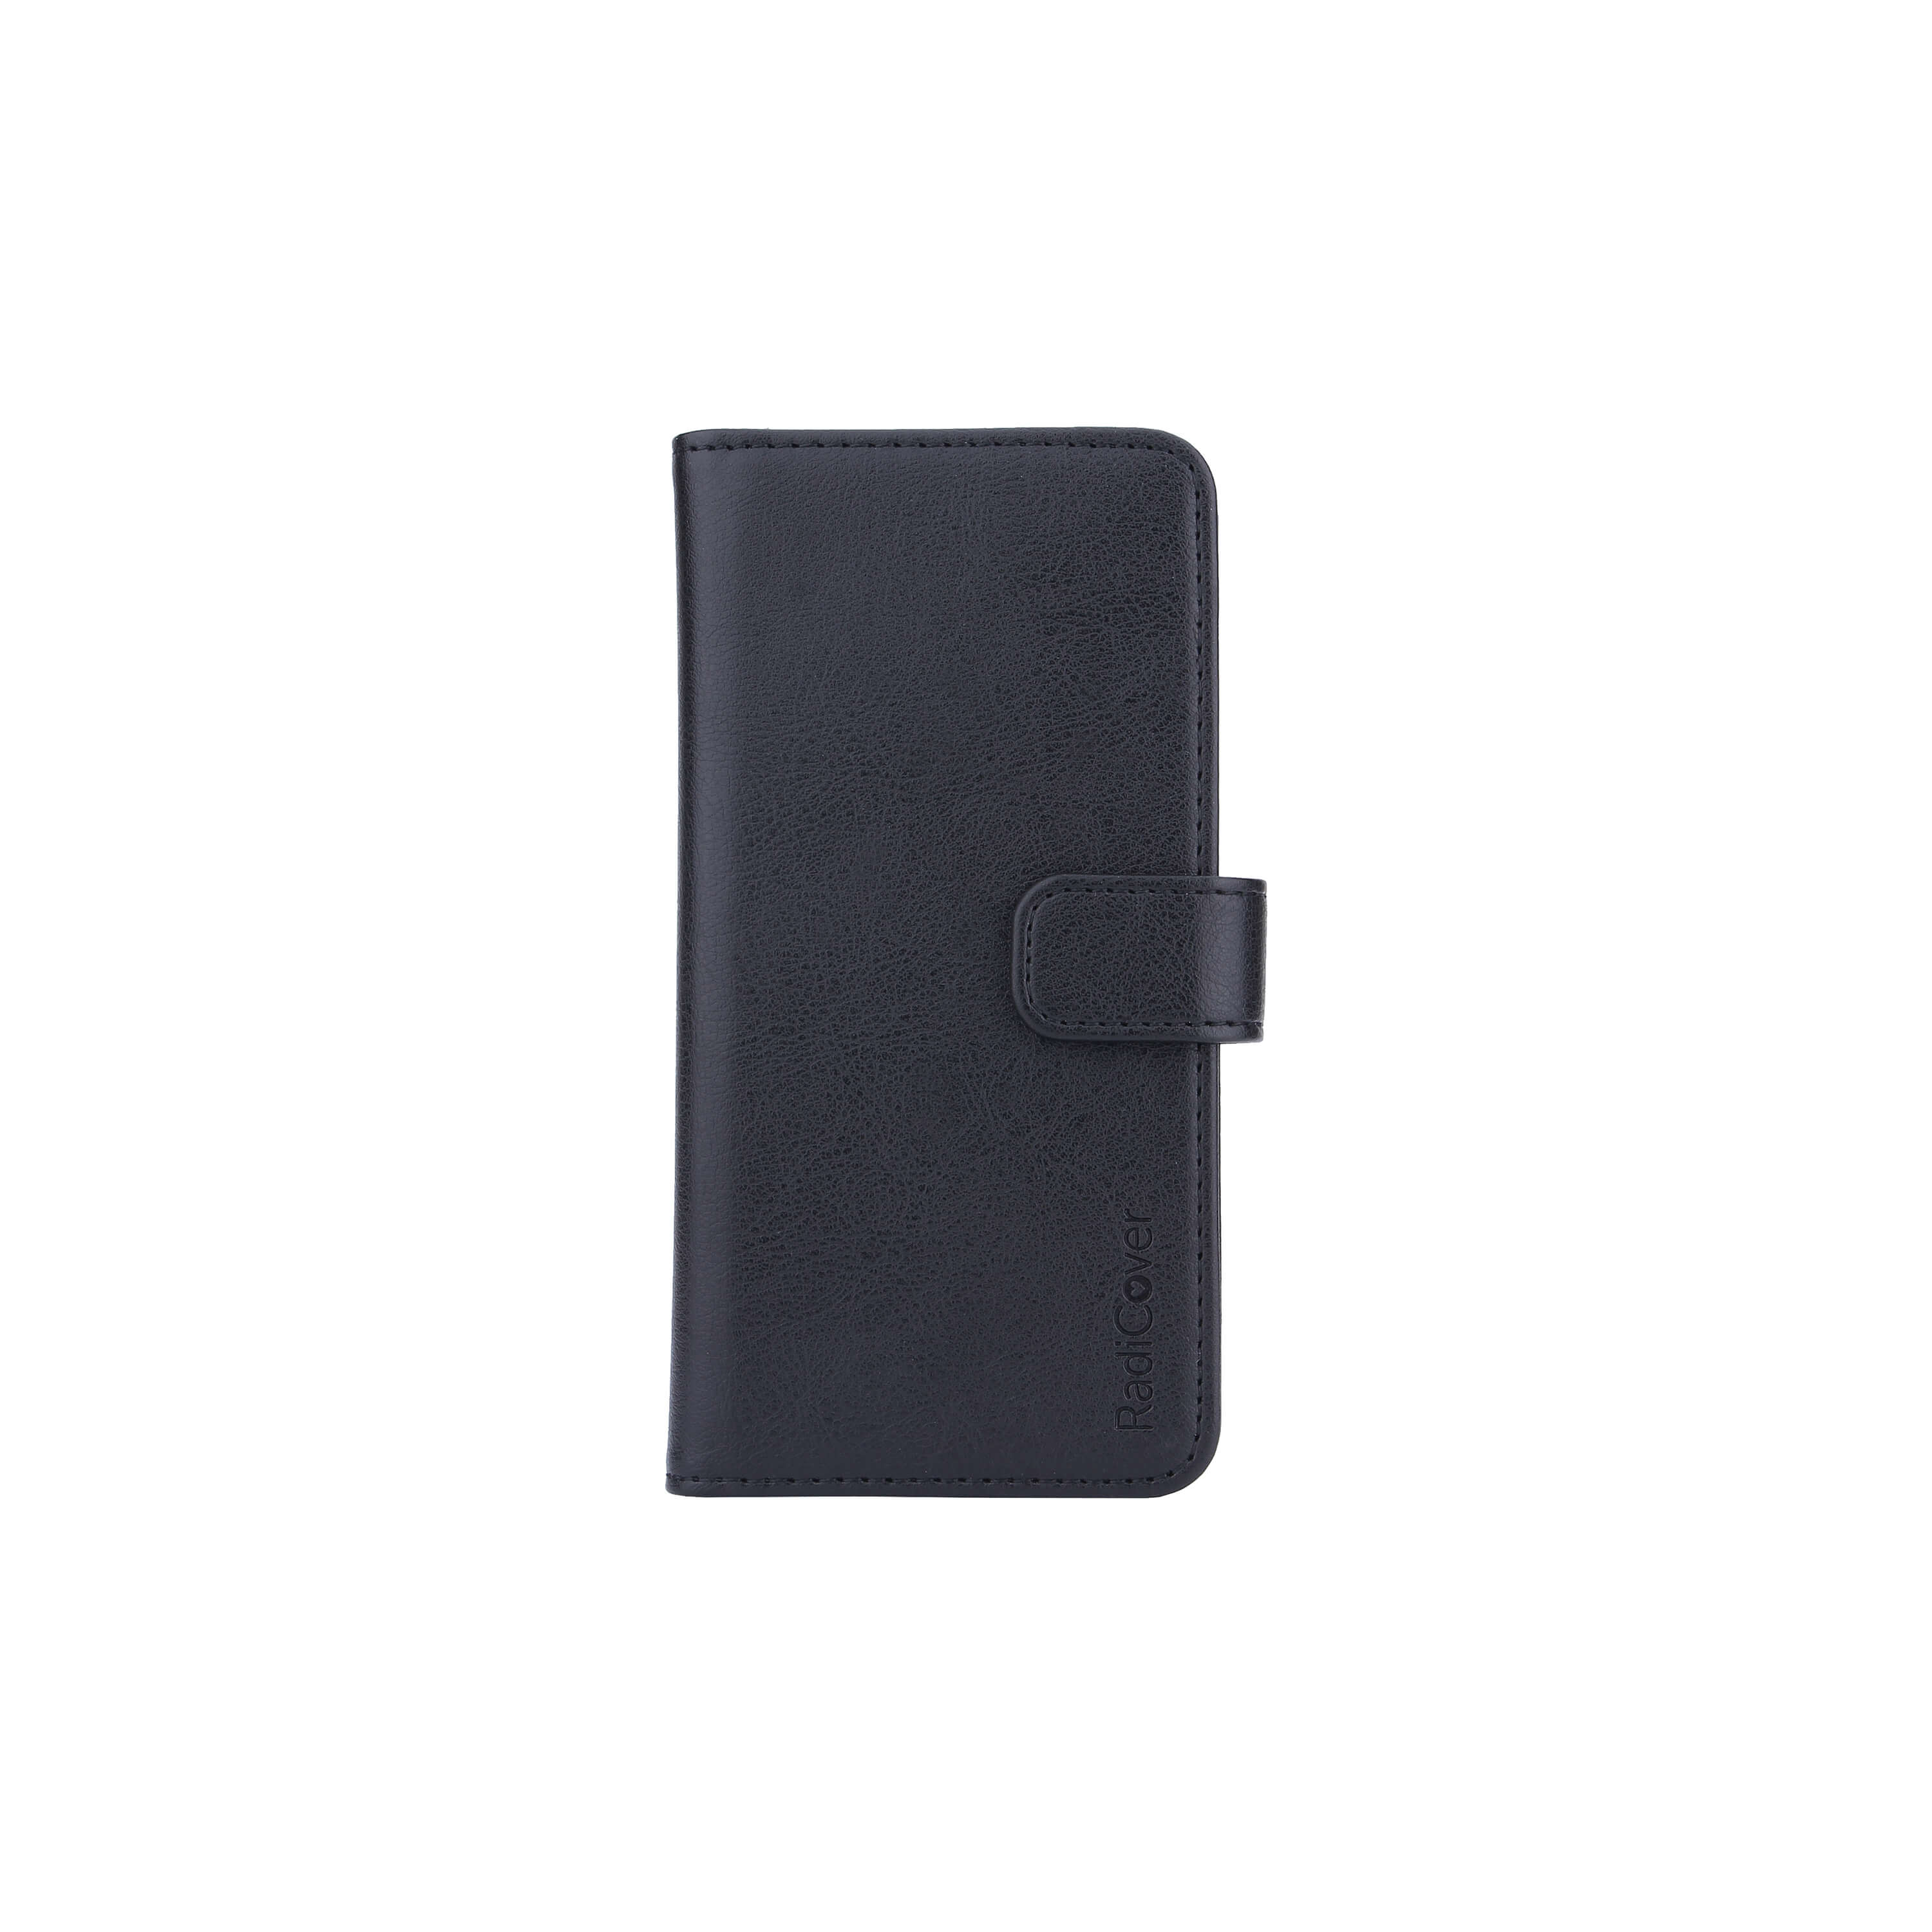 "RadiCover - Radiation protection wallet Leather Universal Large 5,5-6,2"" Exclusive 2in1"